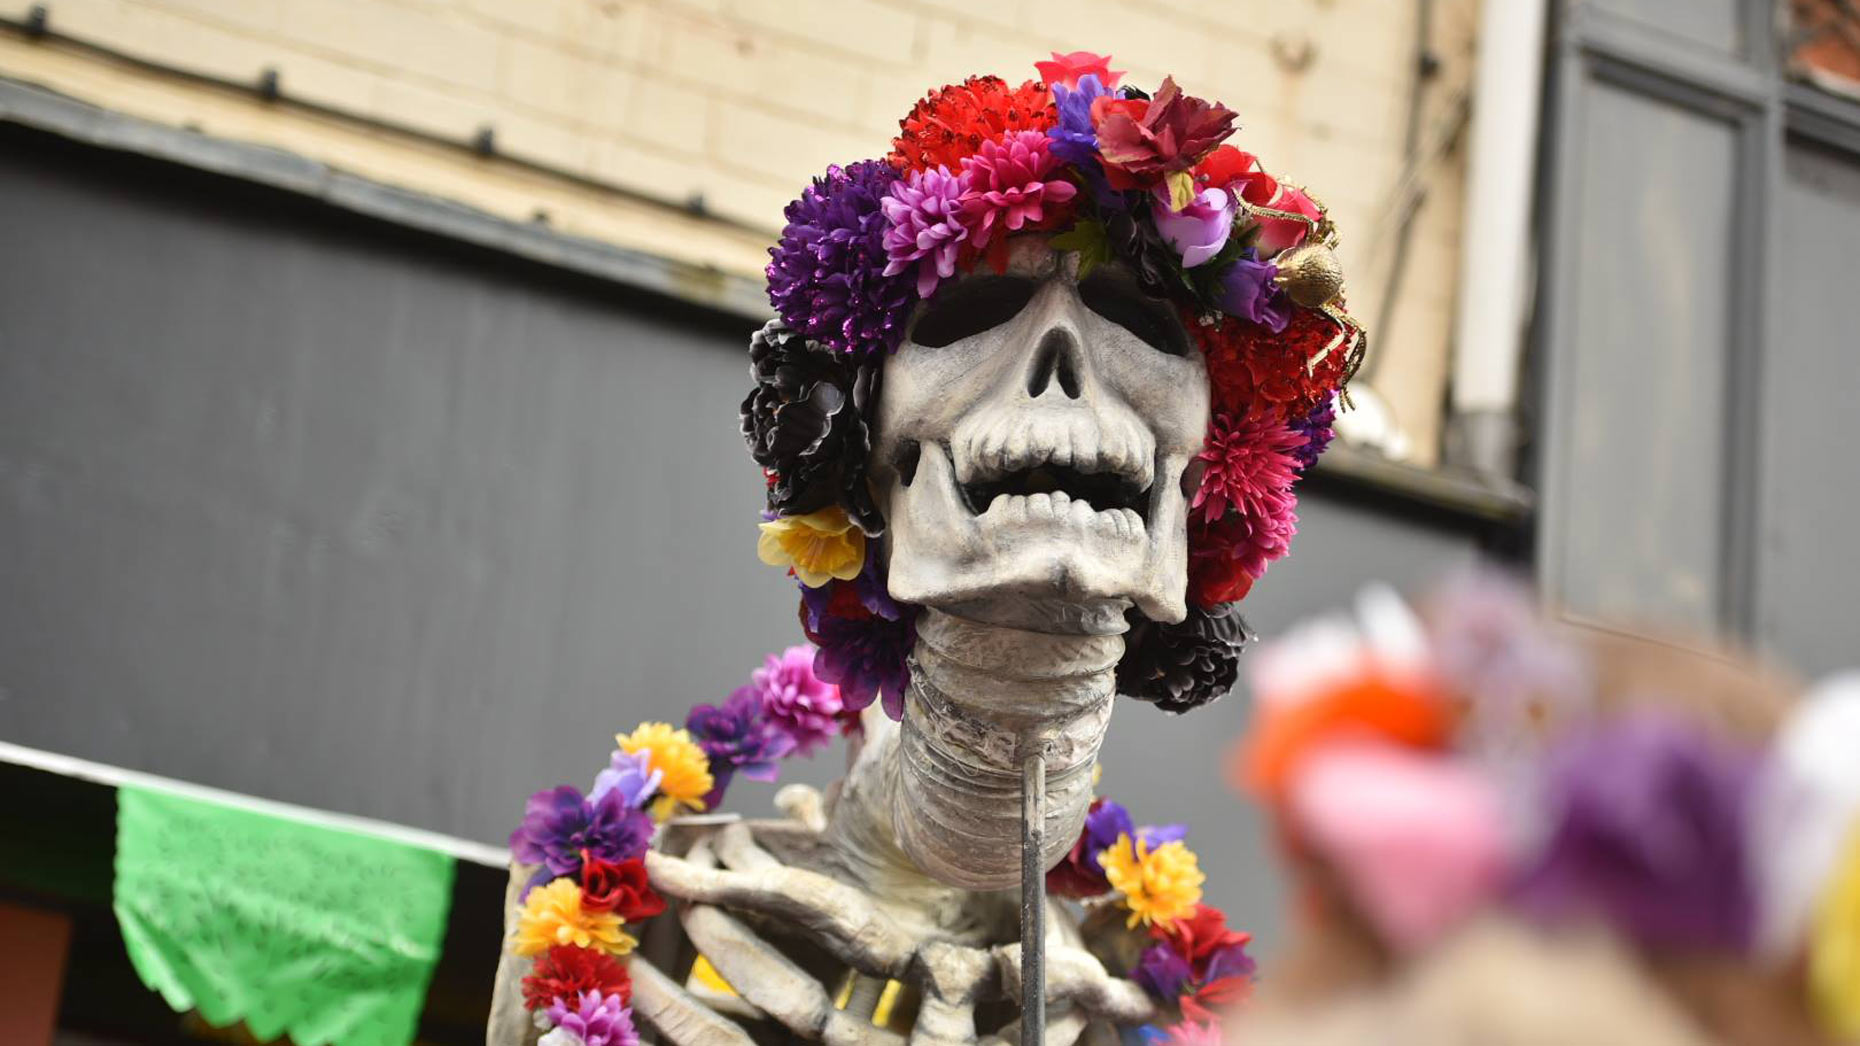 Boneshaking Halloween Day Of The Dead Parade Draws. Great White Shark Decals. Dasara Banners. Demonic Signs Of Stroke. Skin Discoloration Signs Of Stroke. Garage Decals. Timeline Facebook Banners. Sin Signs Of Stroke. Wildlife Murals